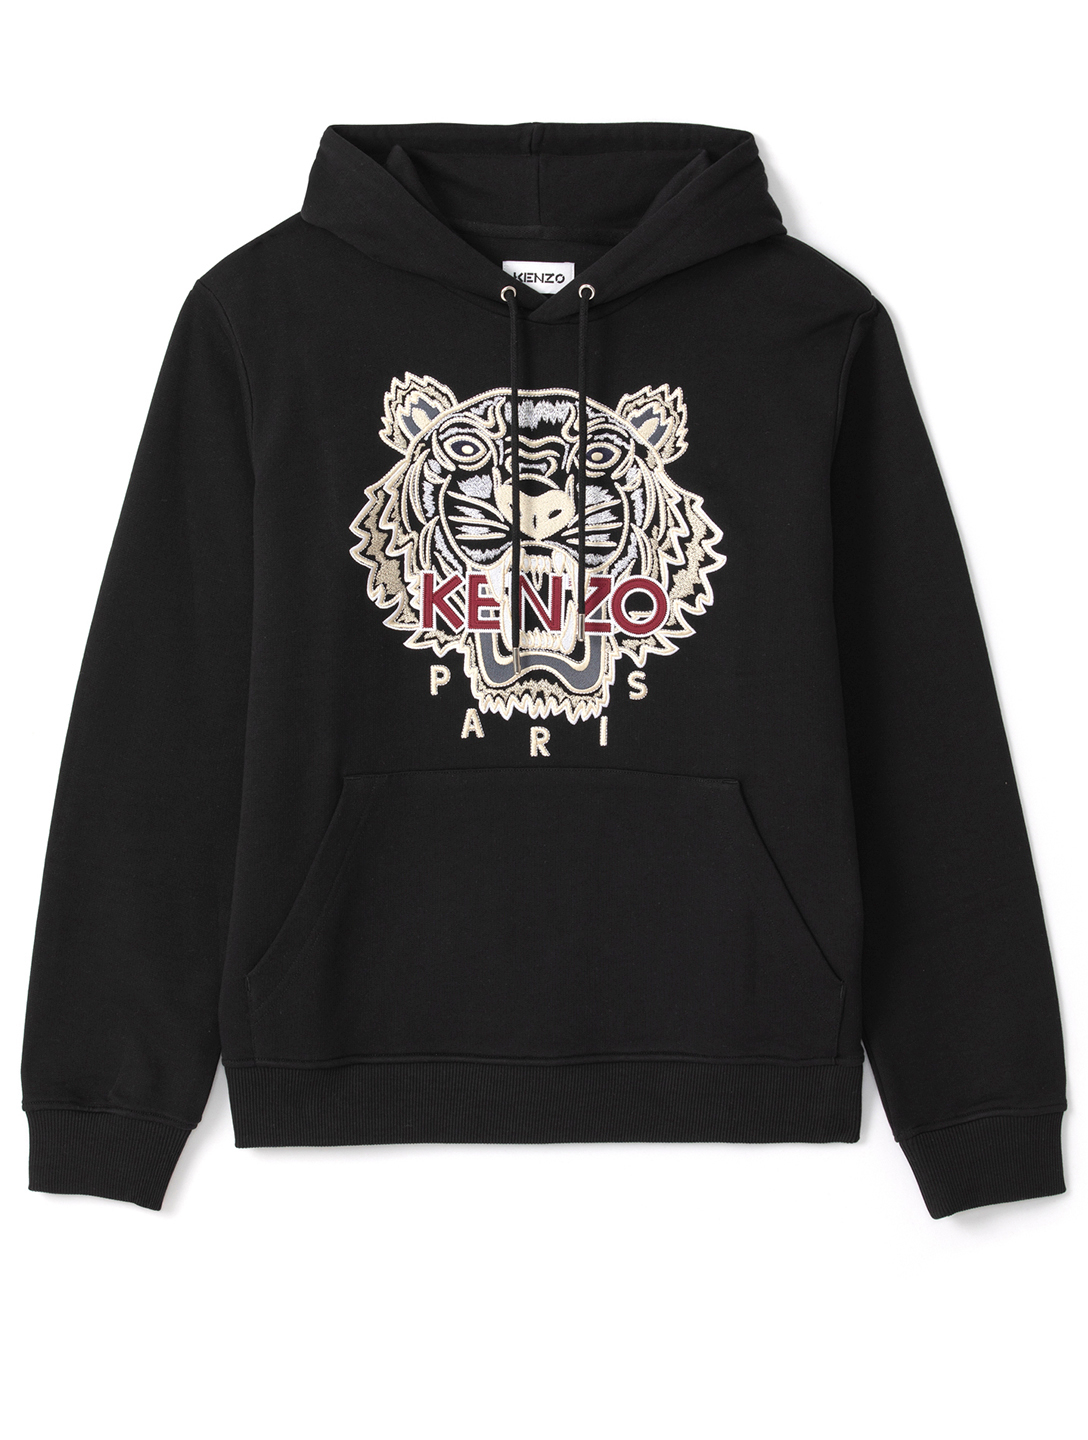 KENZO Cotton Tiger Hoodie Men's Black